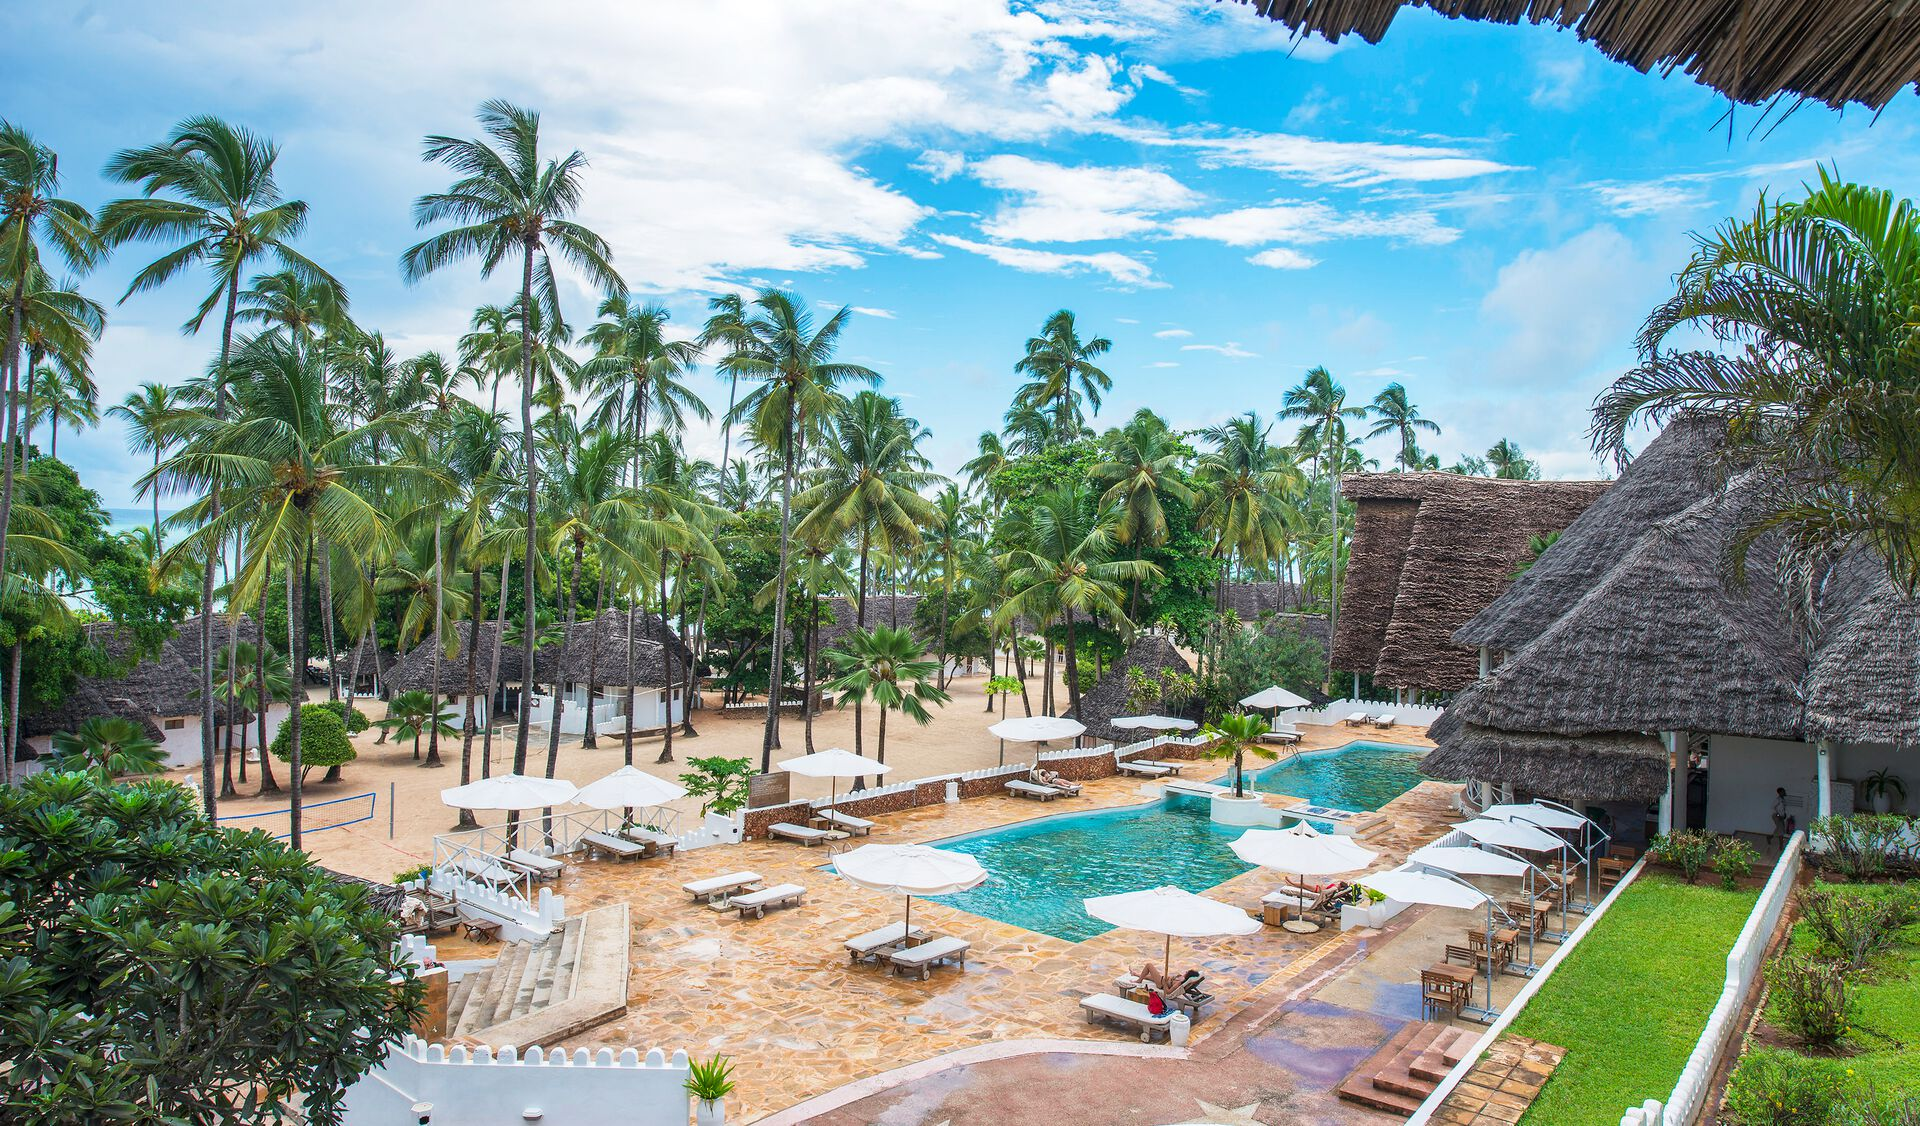 Diamonds Mapenzi Beach - 4*